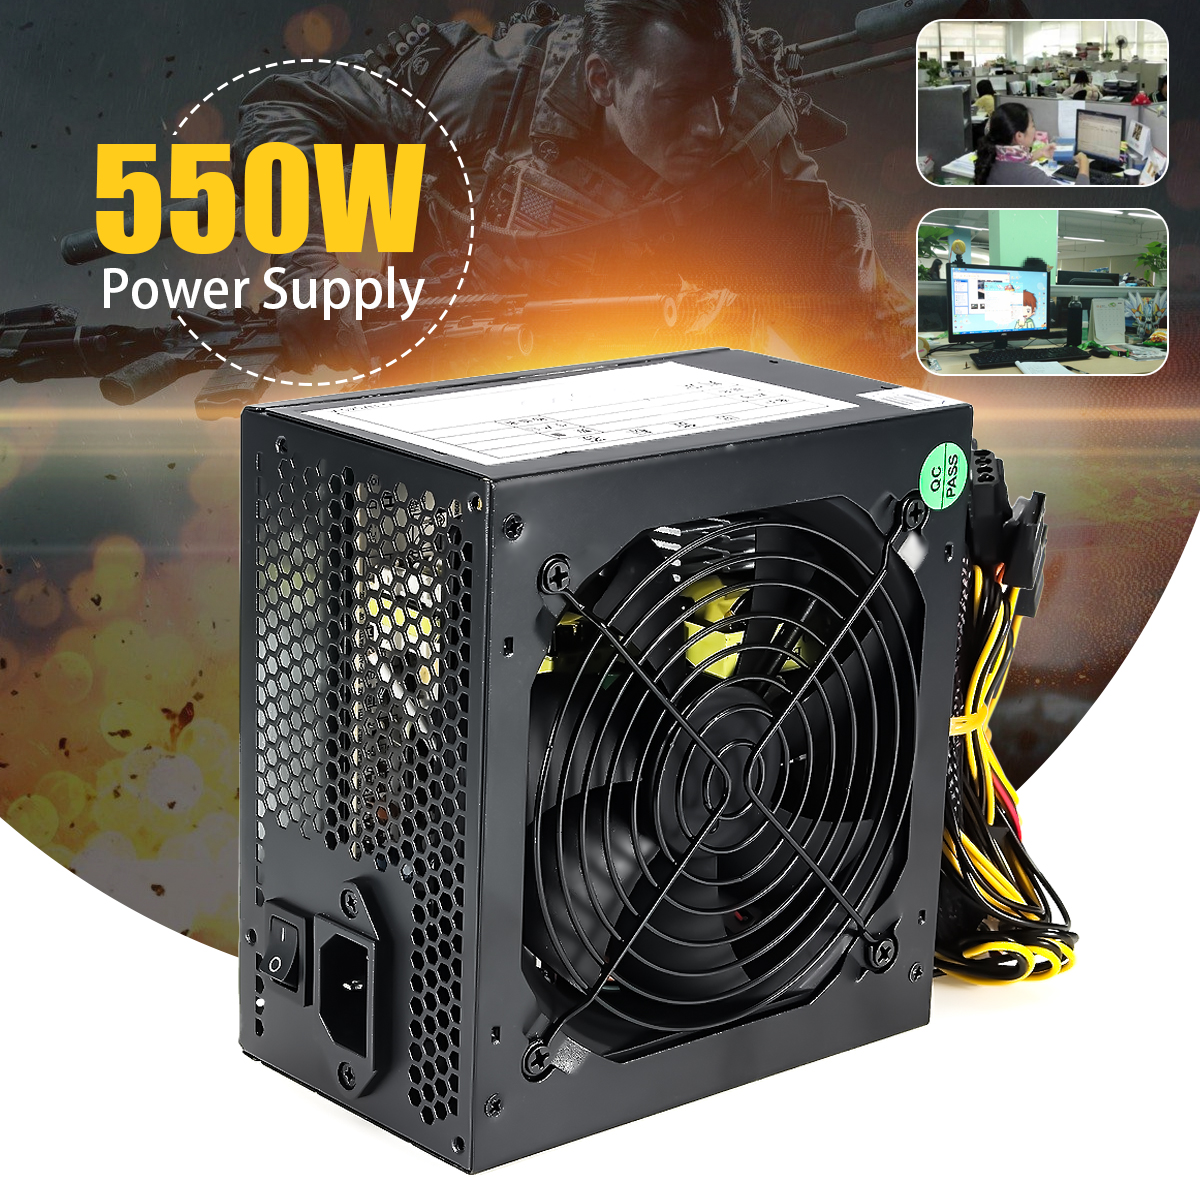 550W Peak- PC PSU Power Supply Black Gaming 120mm Fan Blue LED 20/24pin 12V ATX High Quality Computer Power Supply For BTC